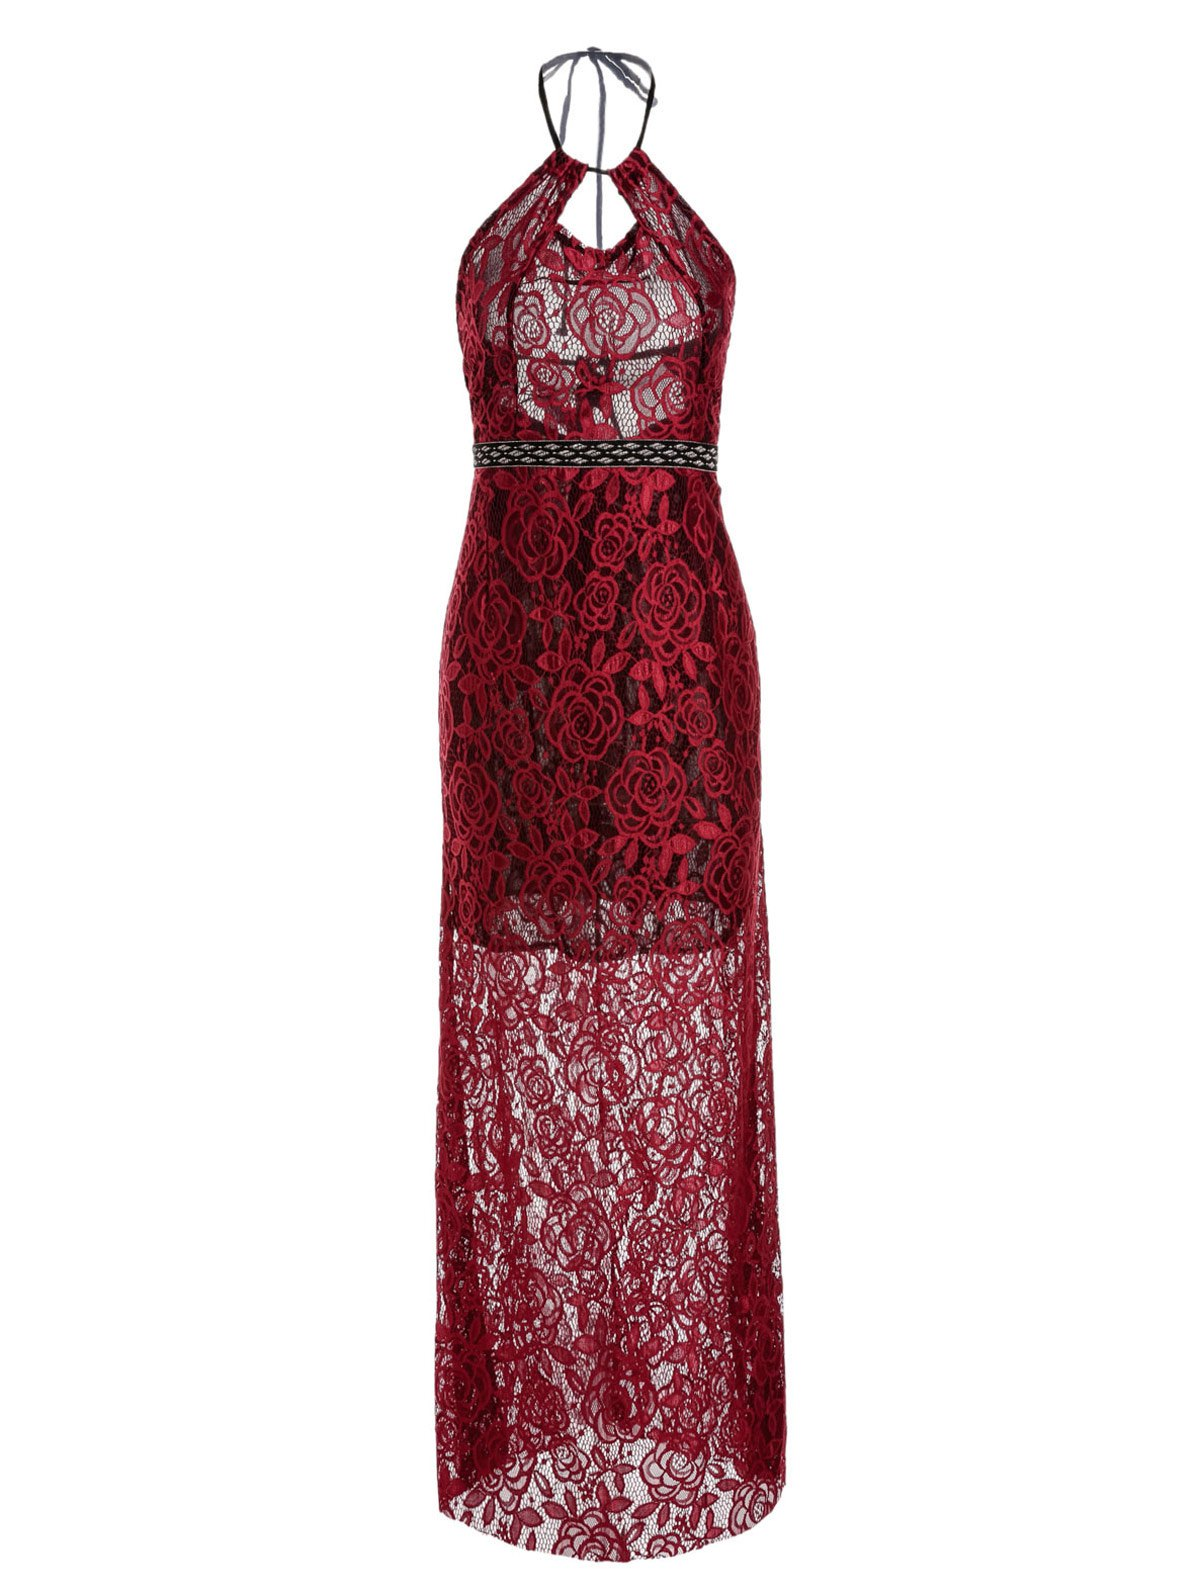 Shop Sexy Style Spaghetti Strap Backless Hollow Out Lace Sleeveless Maxi Dress For Women